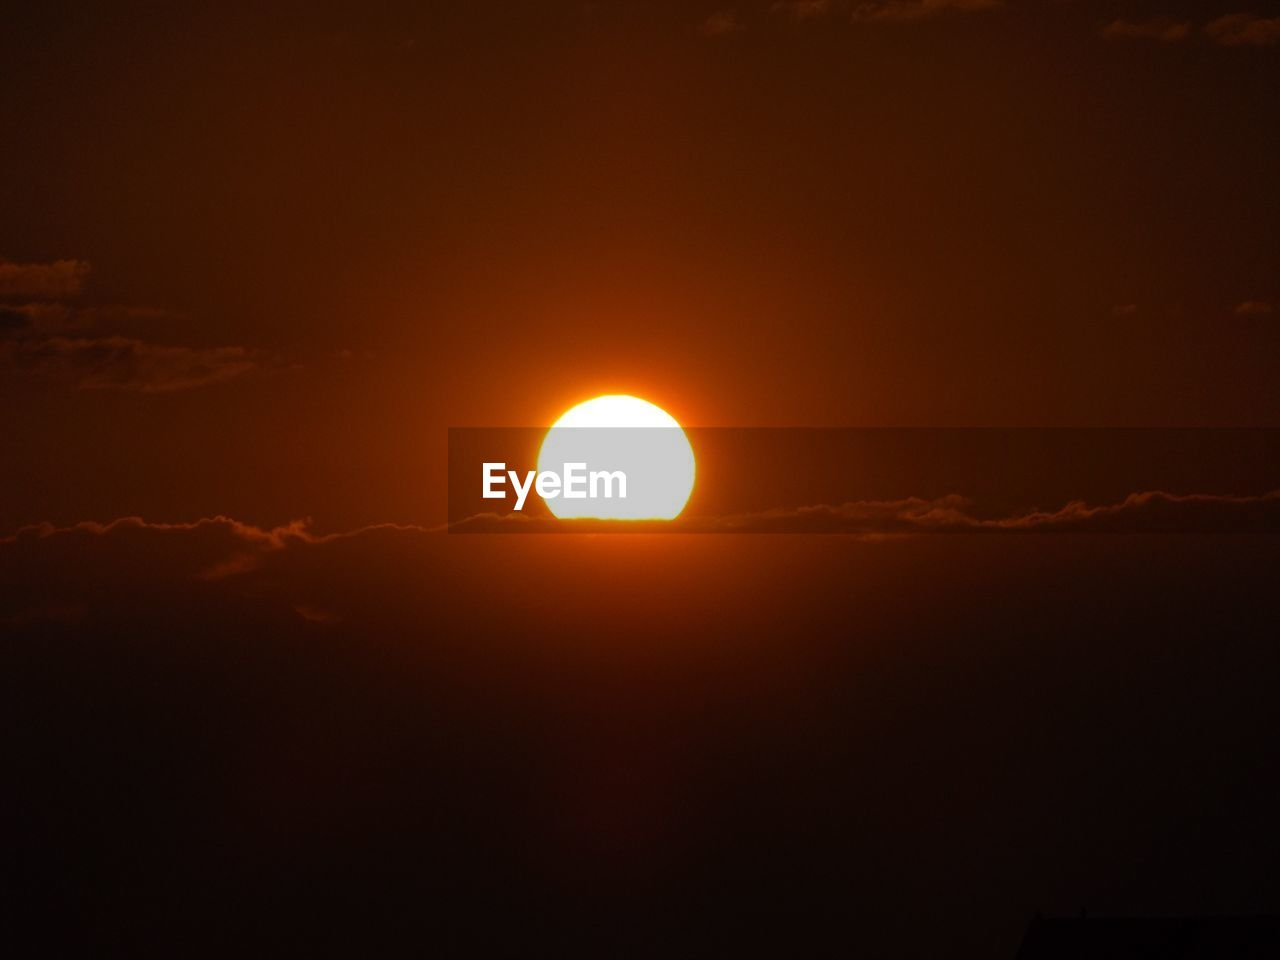 sun, sunset, beauty in nature, scenics, orange color, nature, sky, majestic, tranquil scene, no people, tranquility, outdoors, silhouette, moon, cloud - sky, sunlight, yellow, solar eclipse, astronomy, day